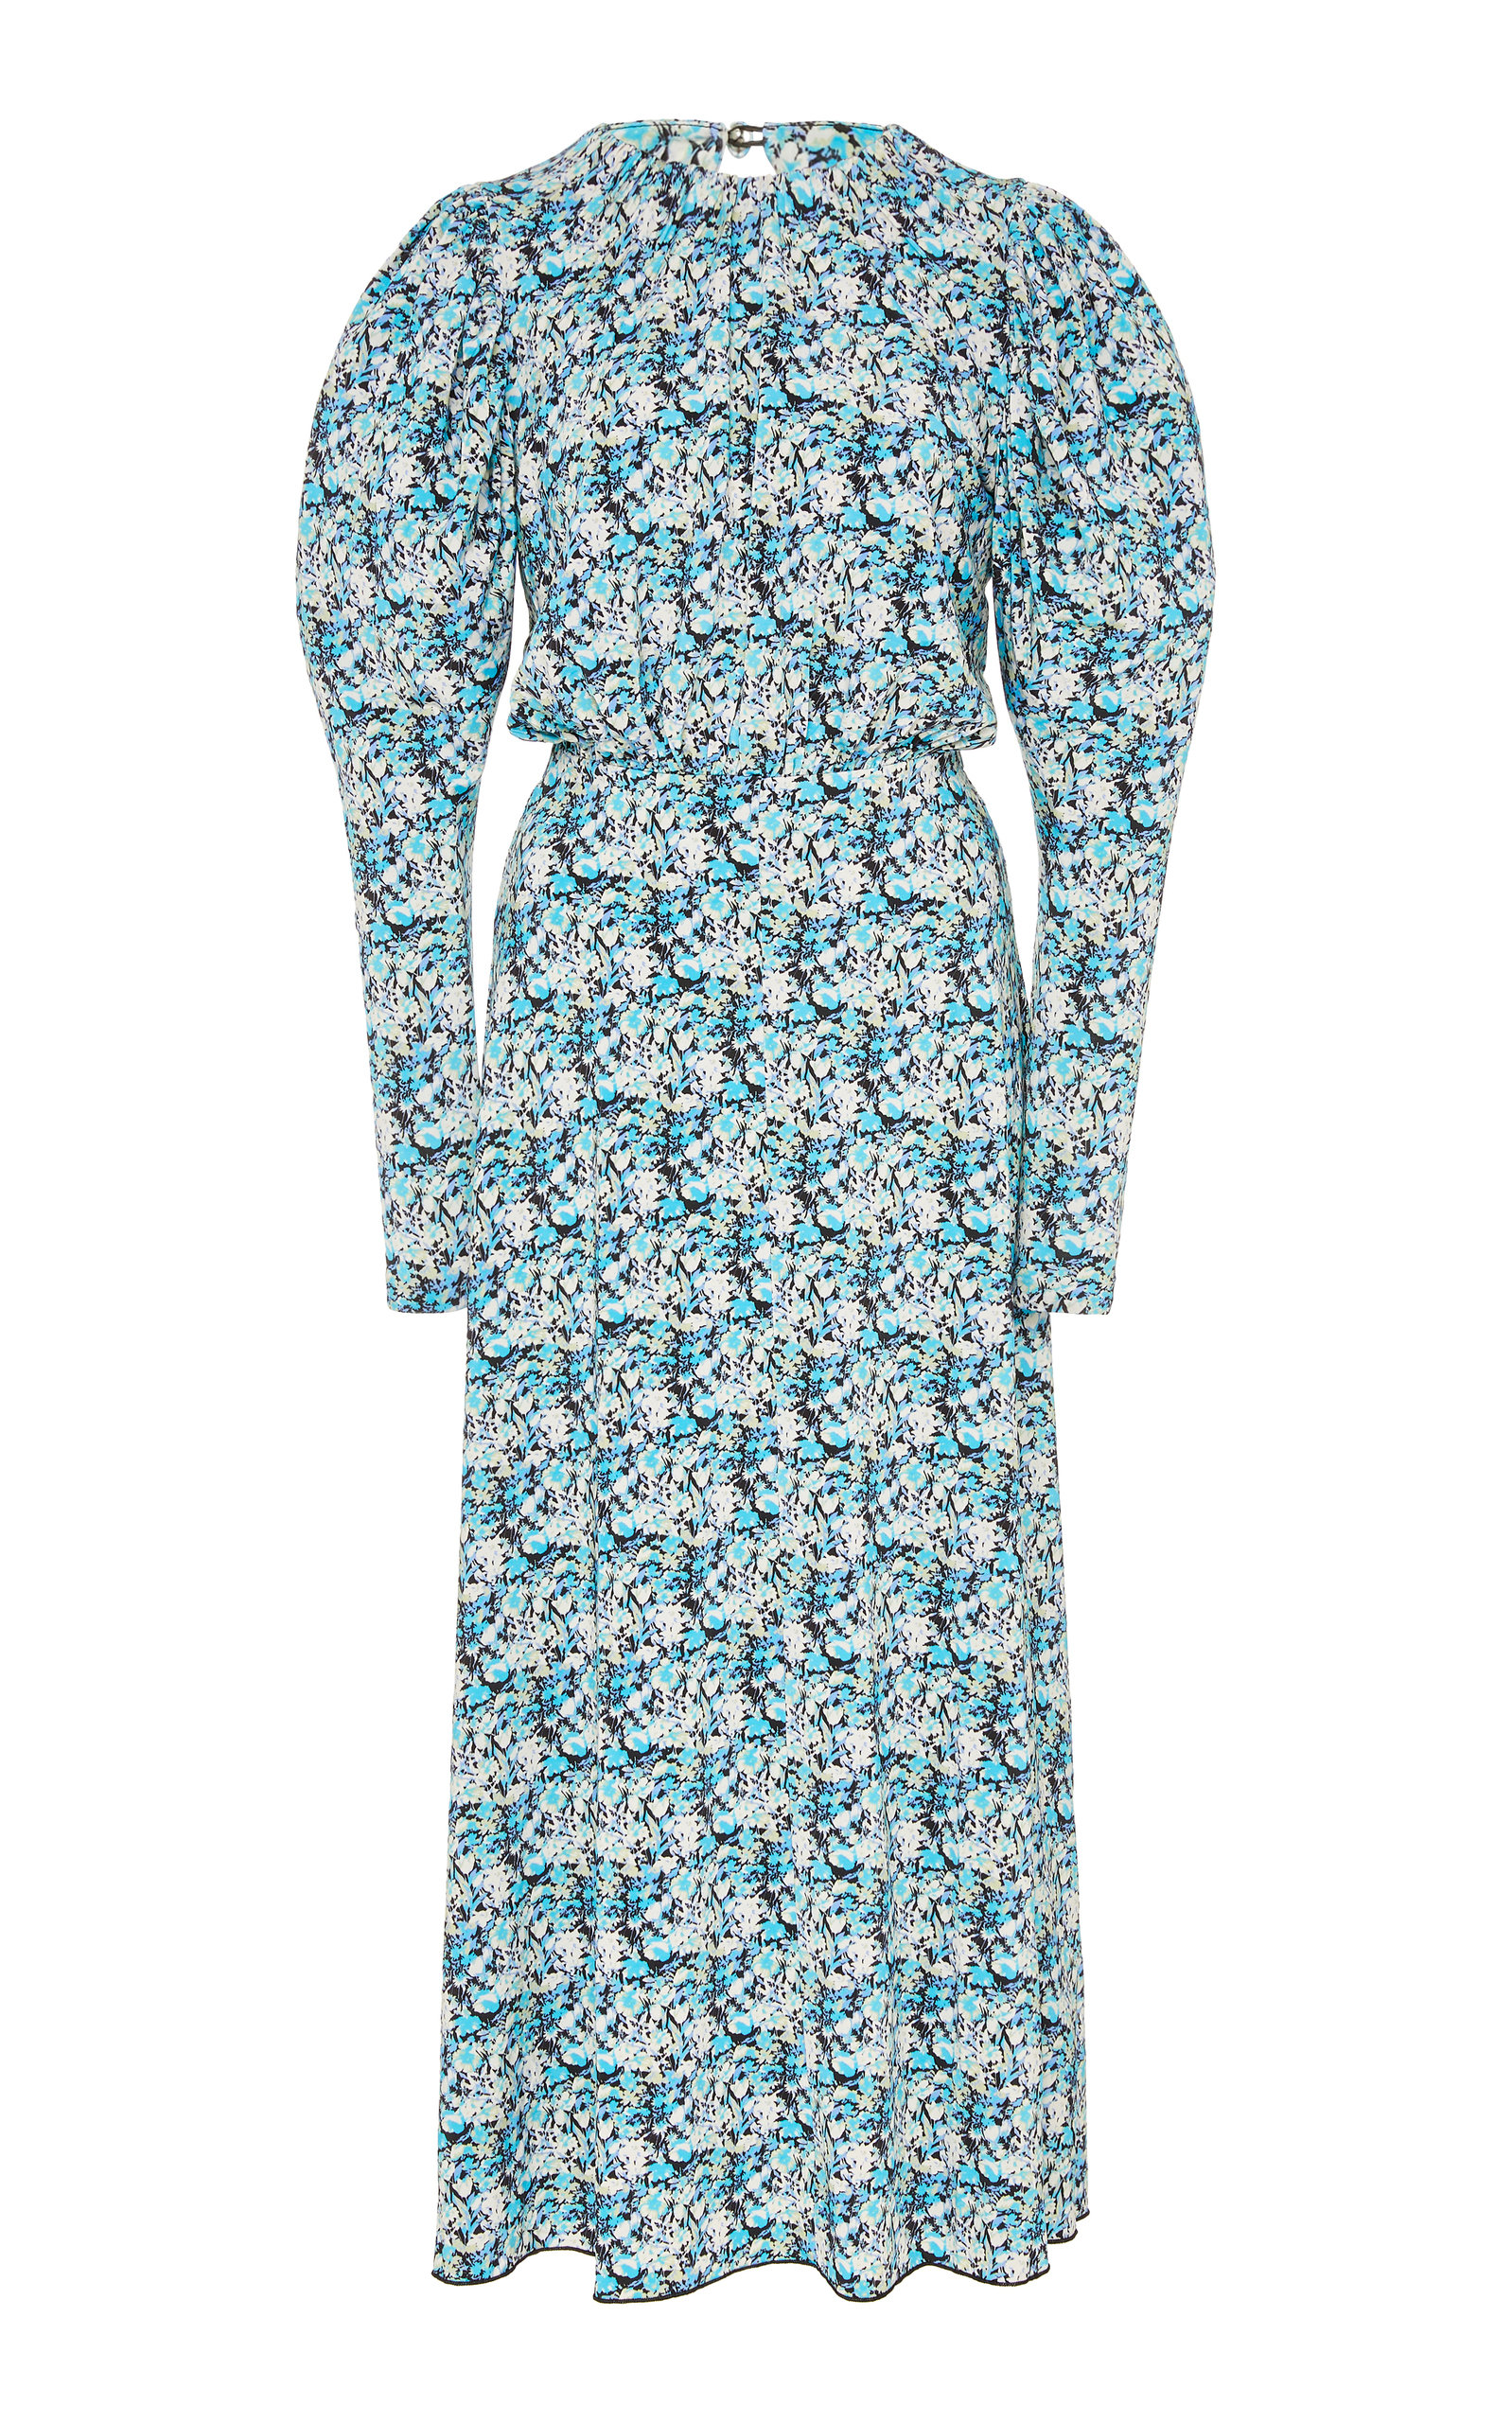 Number 57 Re Runner Crepe Midi Dress by Rotate